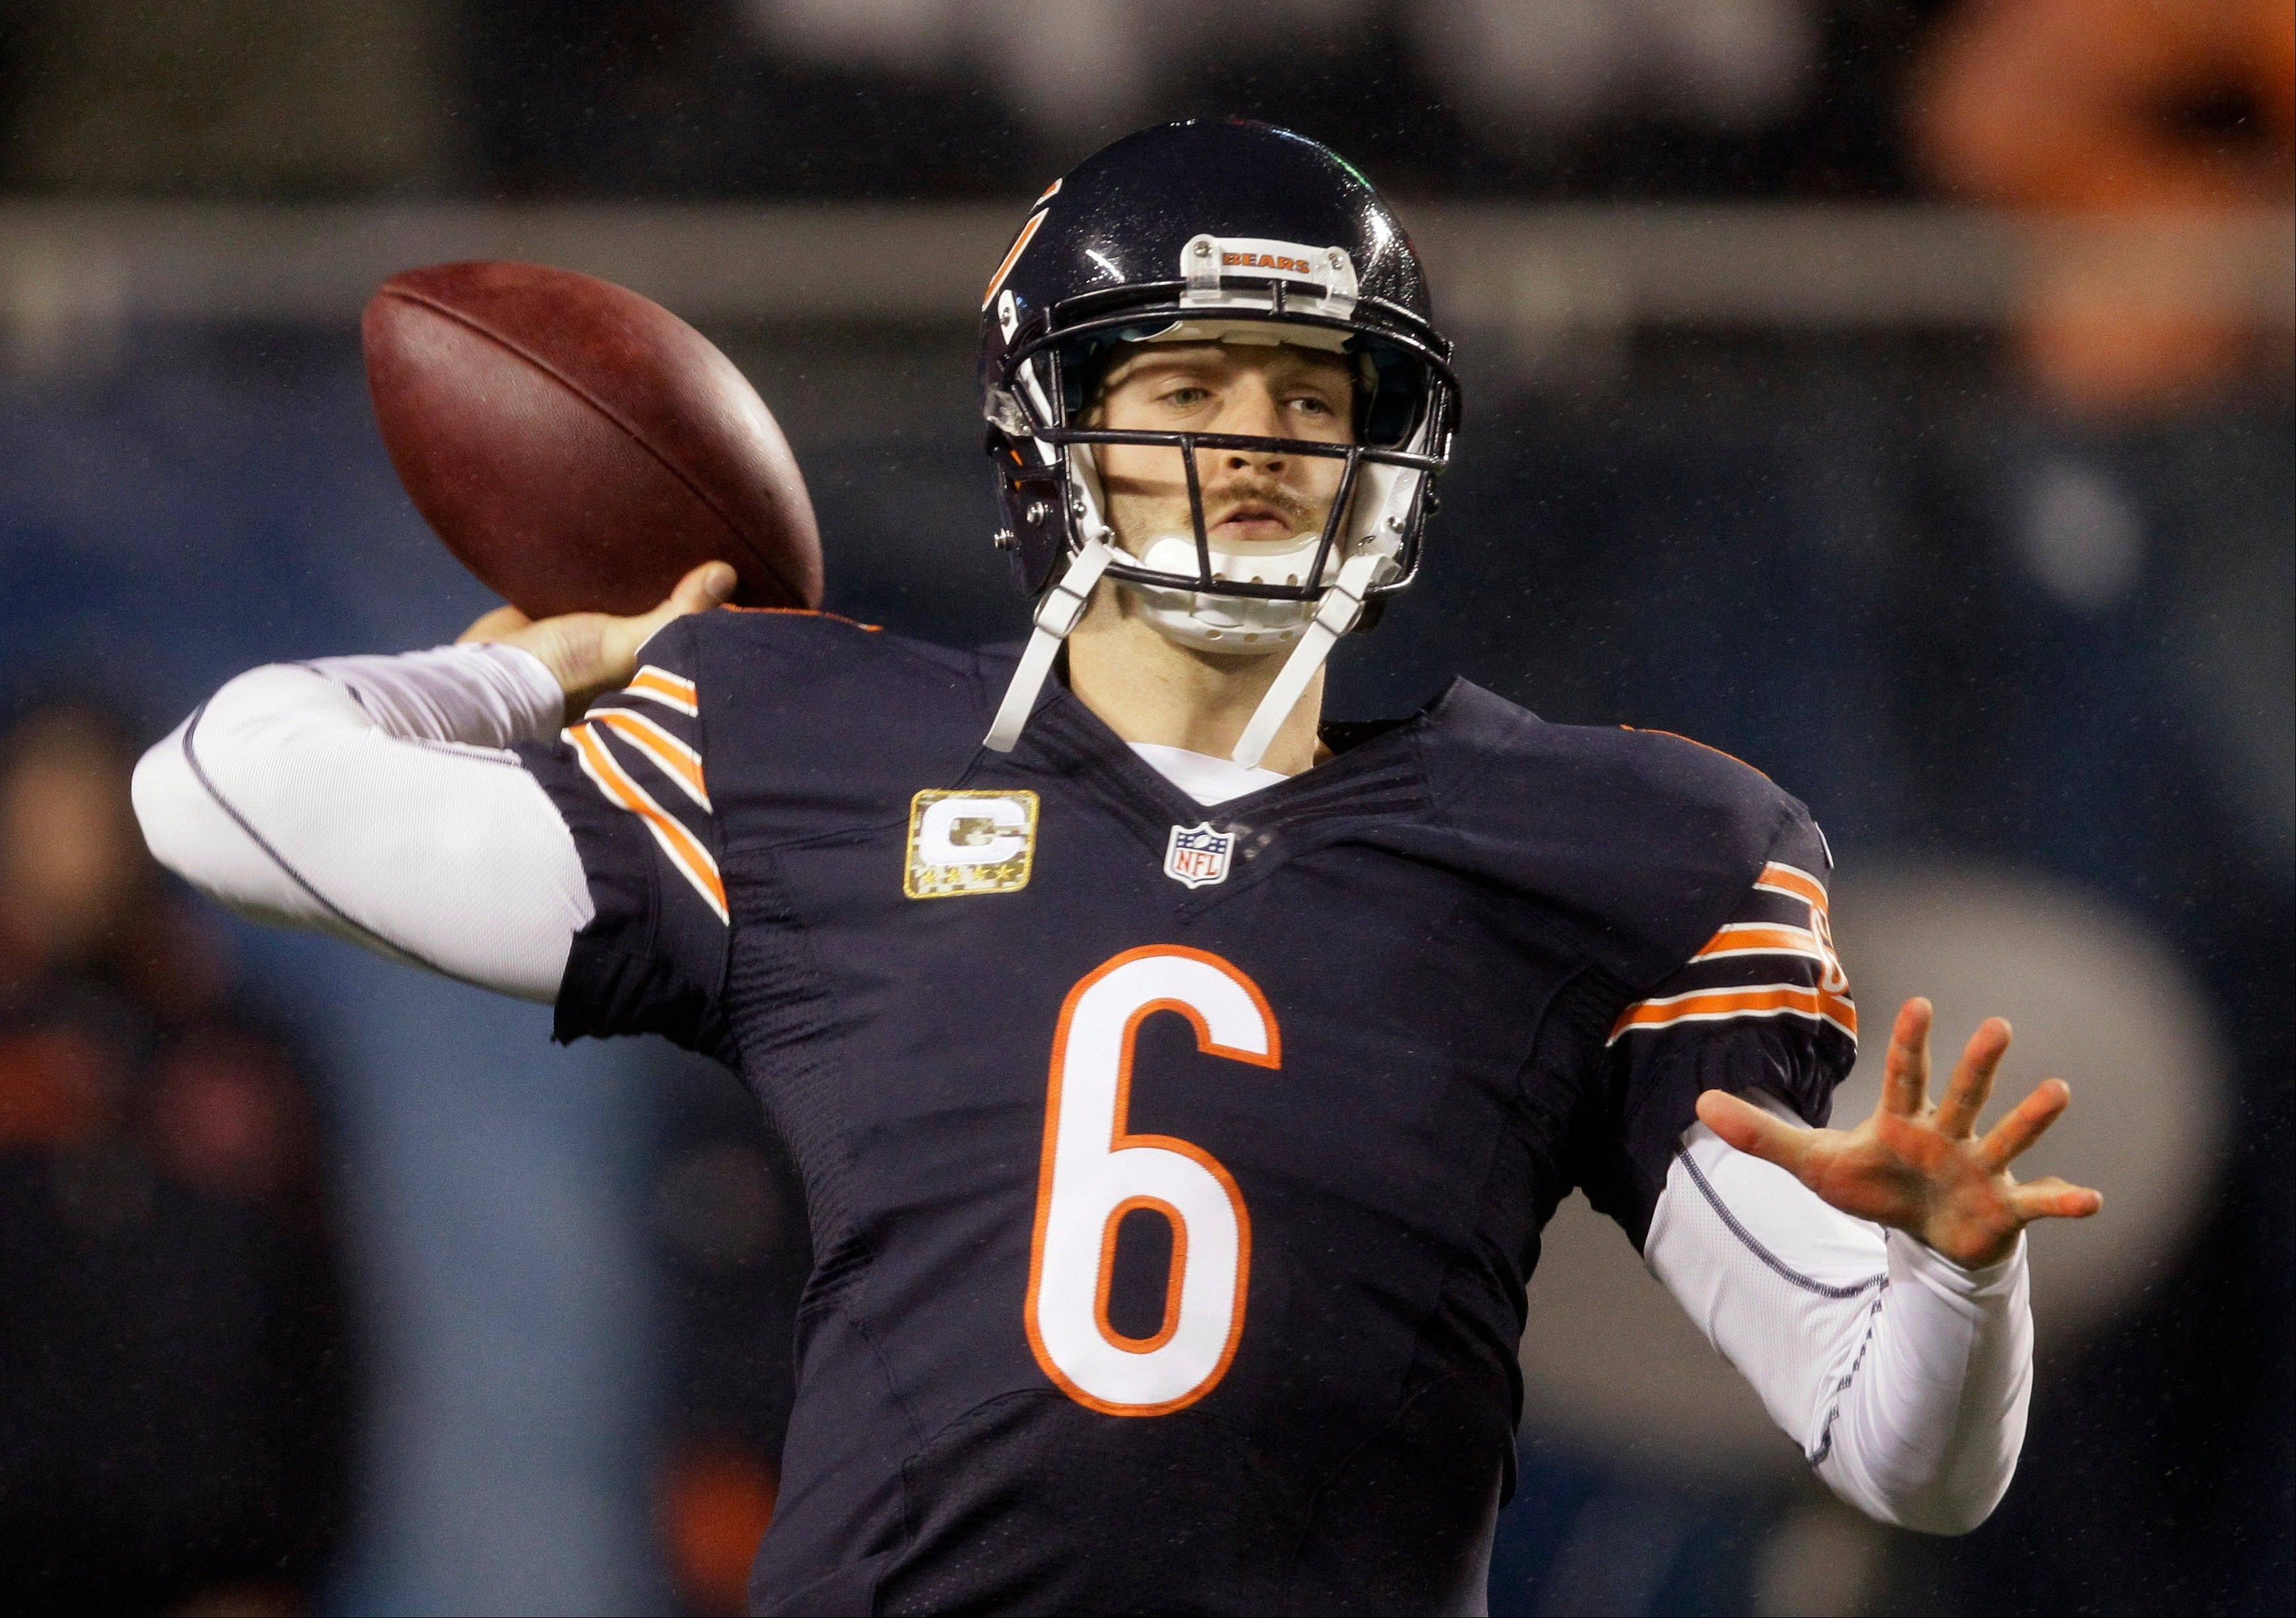 Bears quarterback Jay Cutler warms up Sunday.